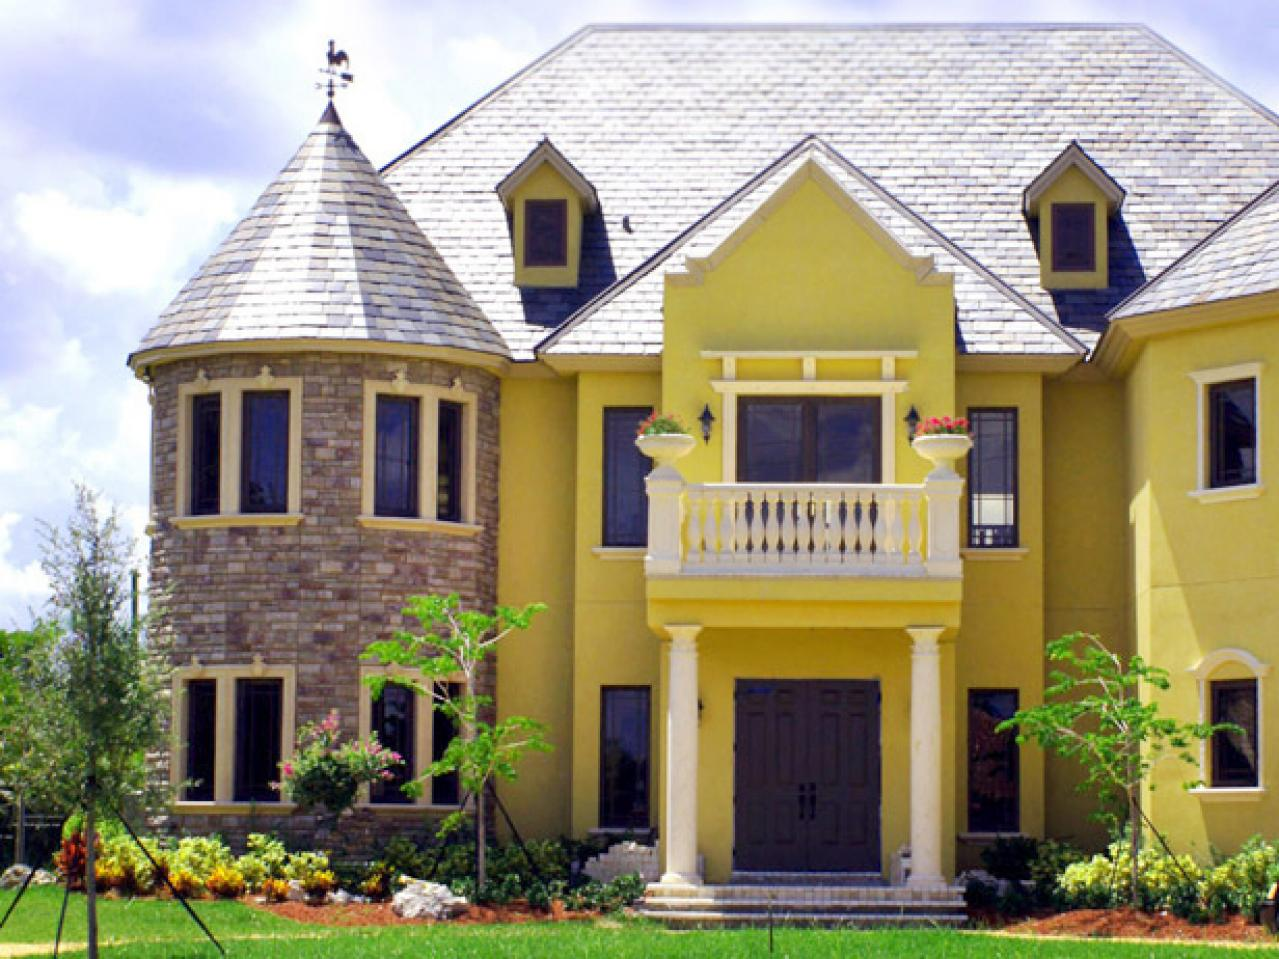 Phenomenal How To Paint The Exterior Of A House Hgtv Largest Home Design Picture Inspirations Pitcheantrous